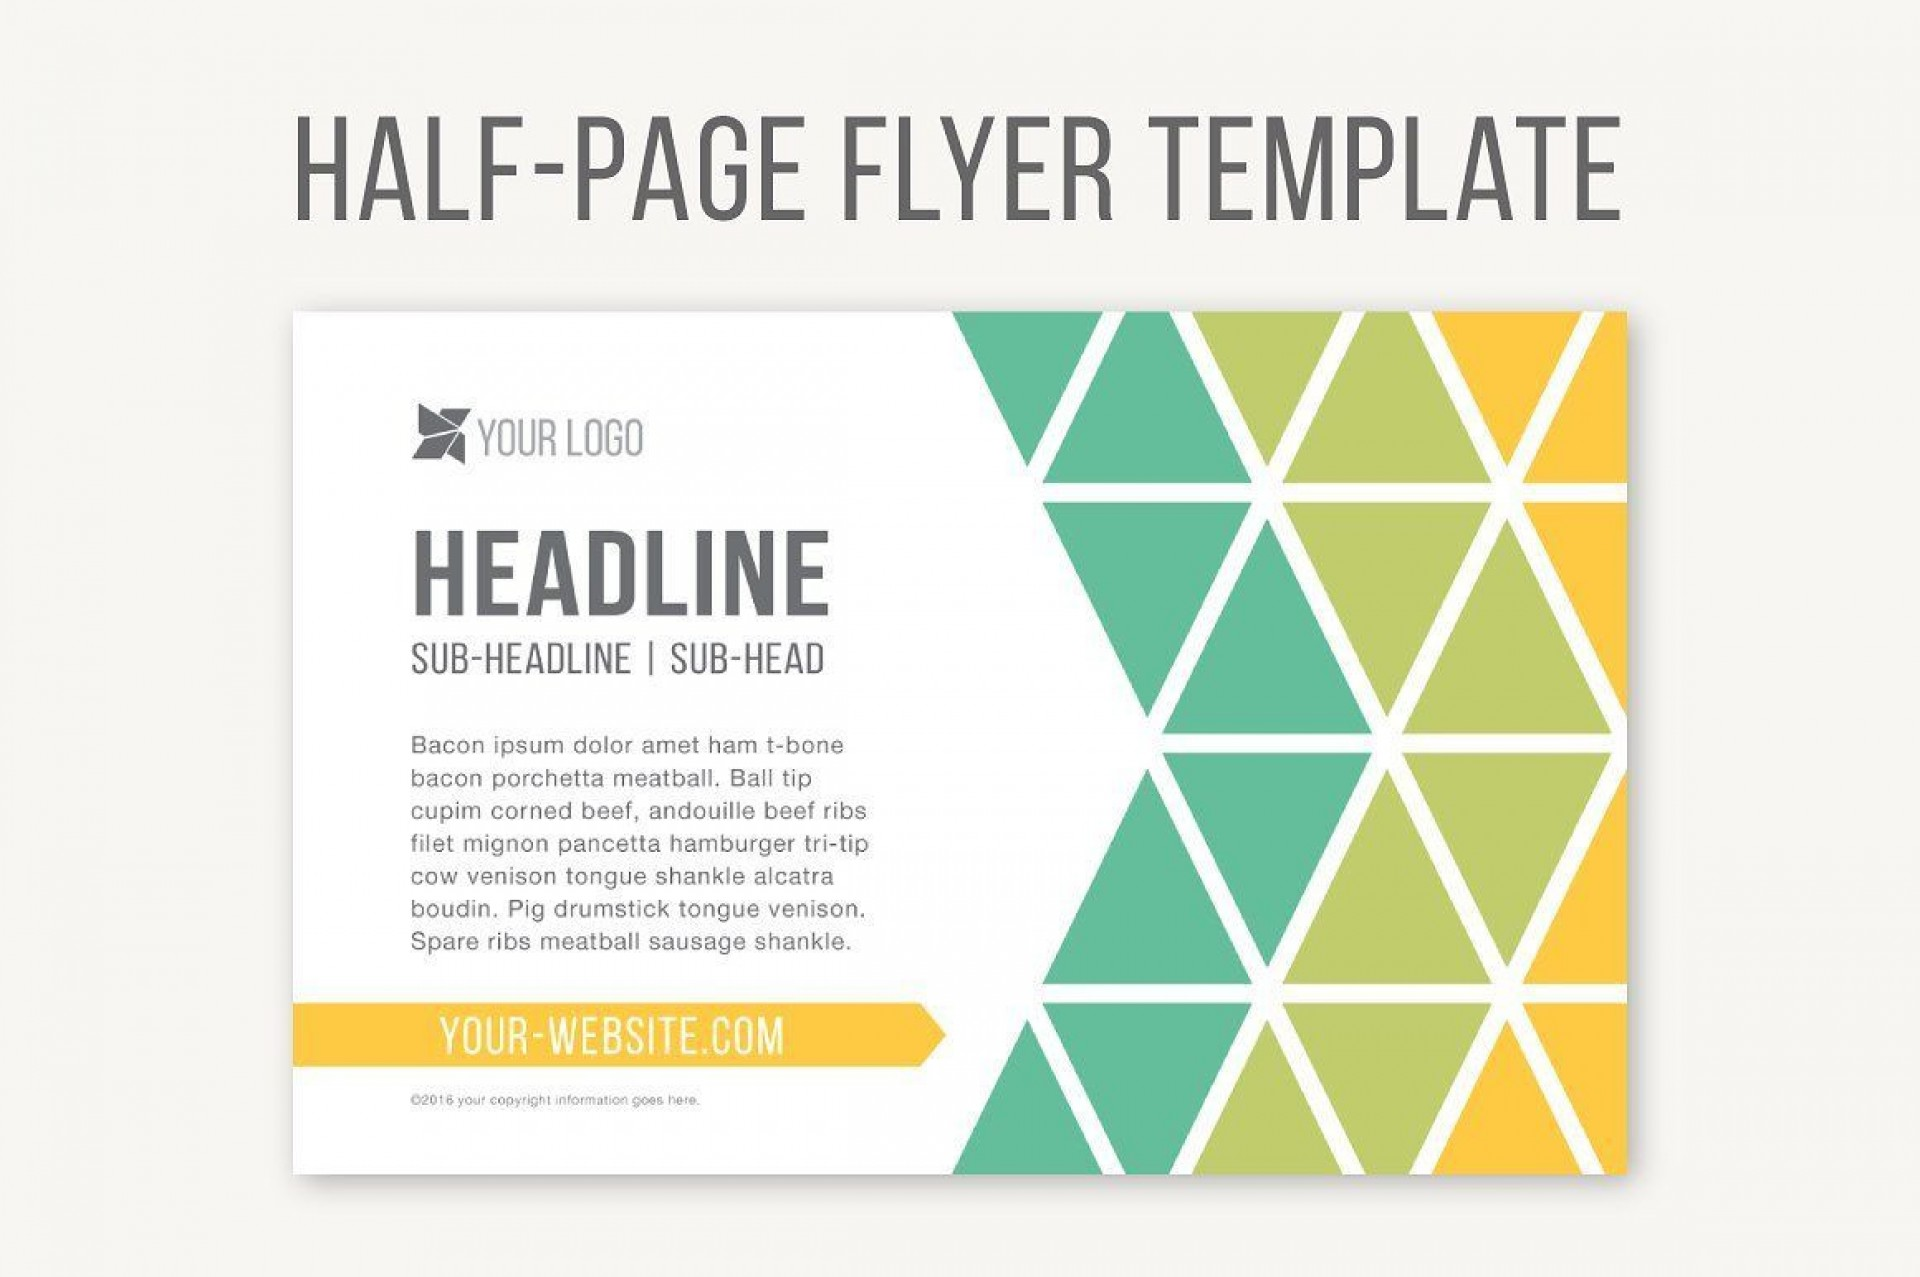 004 Excellent Half Page Flyer Template Inspiration  Templates Google Doc Free Word Canva1920